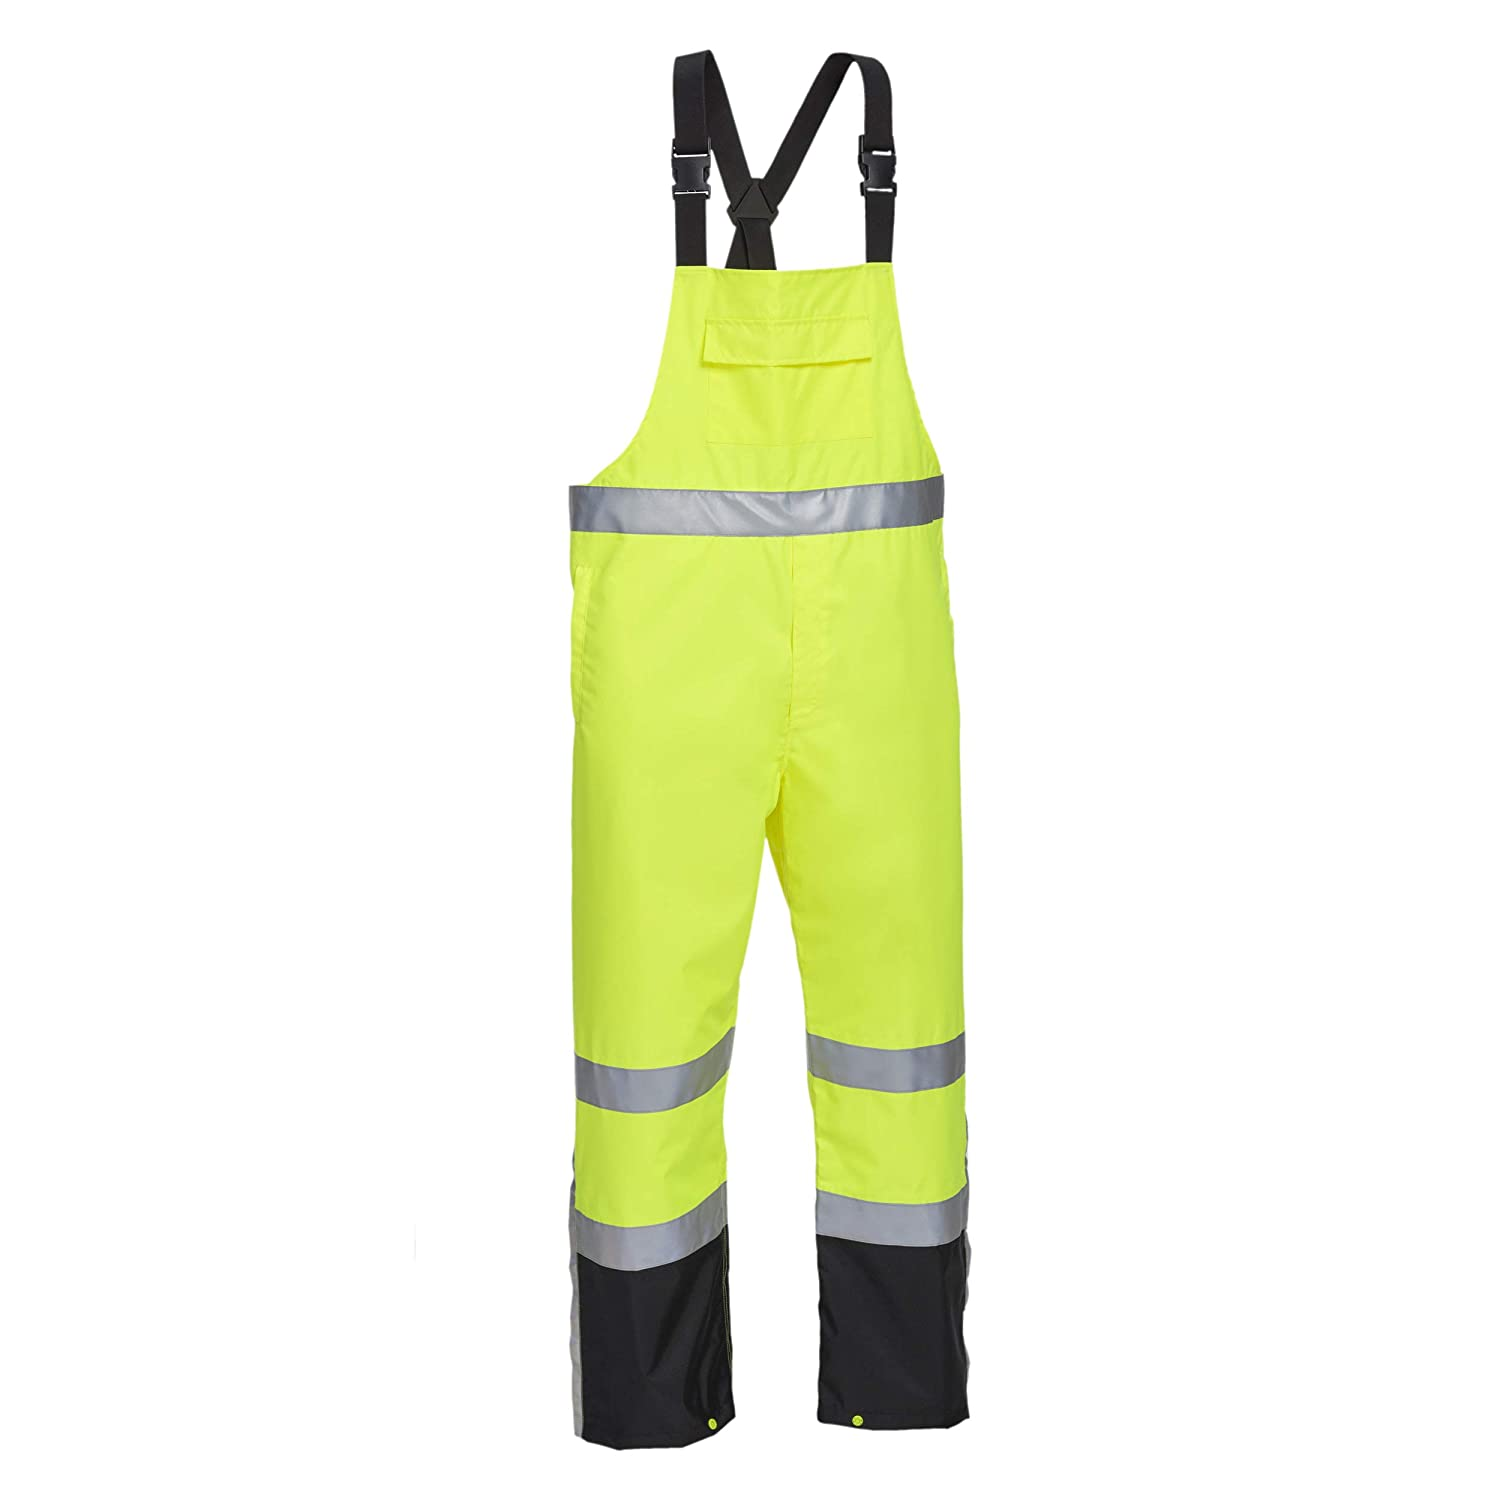 West Chester JD44530 John Deere High Visibility ANSI Class III Rain Suit Jacket and Bib with Color Block: Lime Green/Black, Large, 3M Reflective Tape, Reflective John Deere Logo: Industrial & Scientific